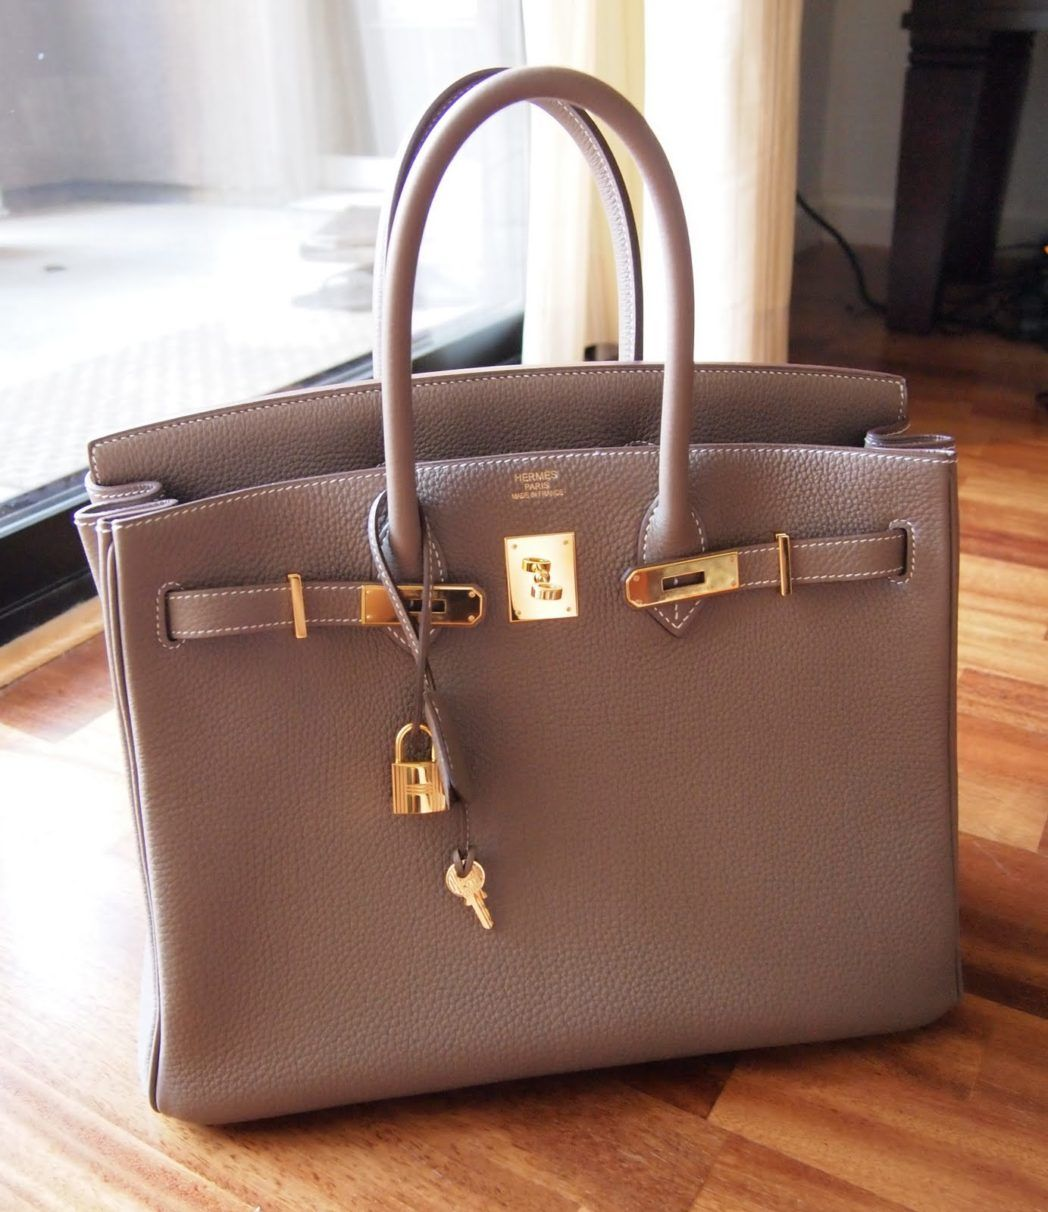 Birkin Inspired Handbags - Your Ultimate Guide To Hermes Bag Dupes ... b17c558d98624